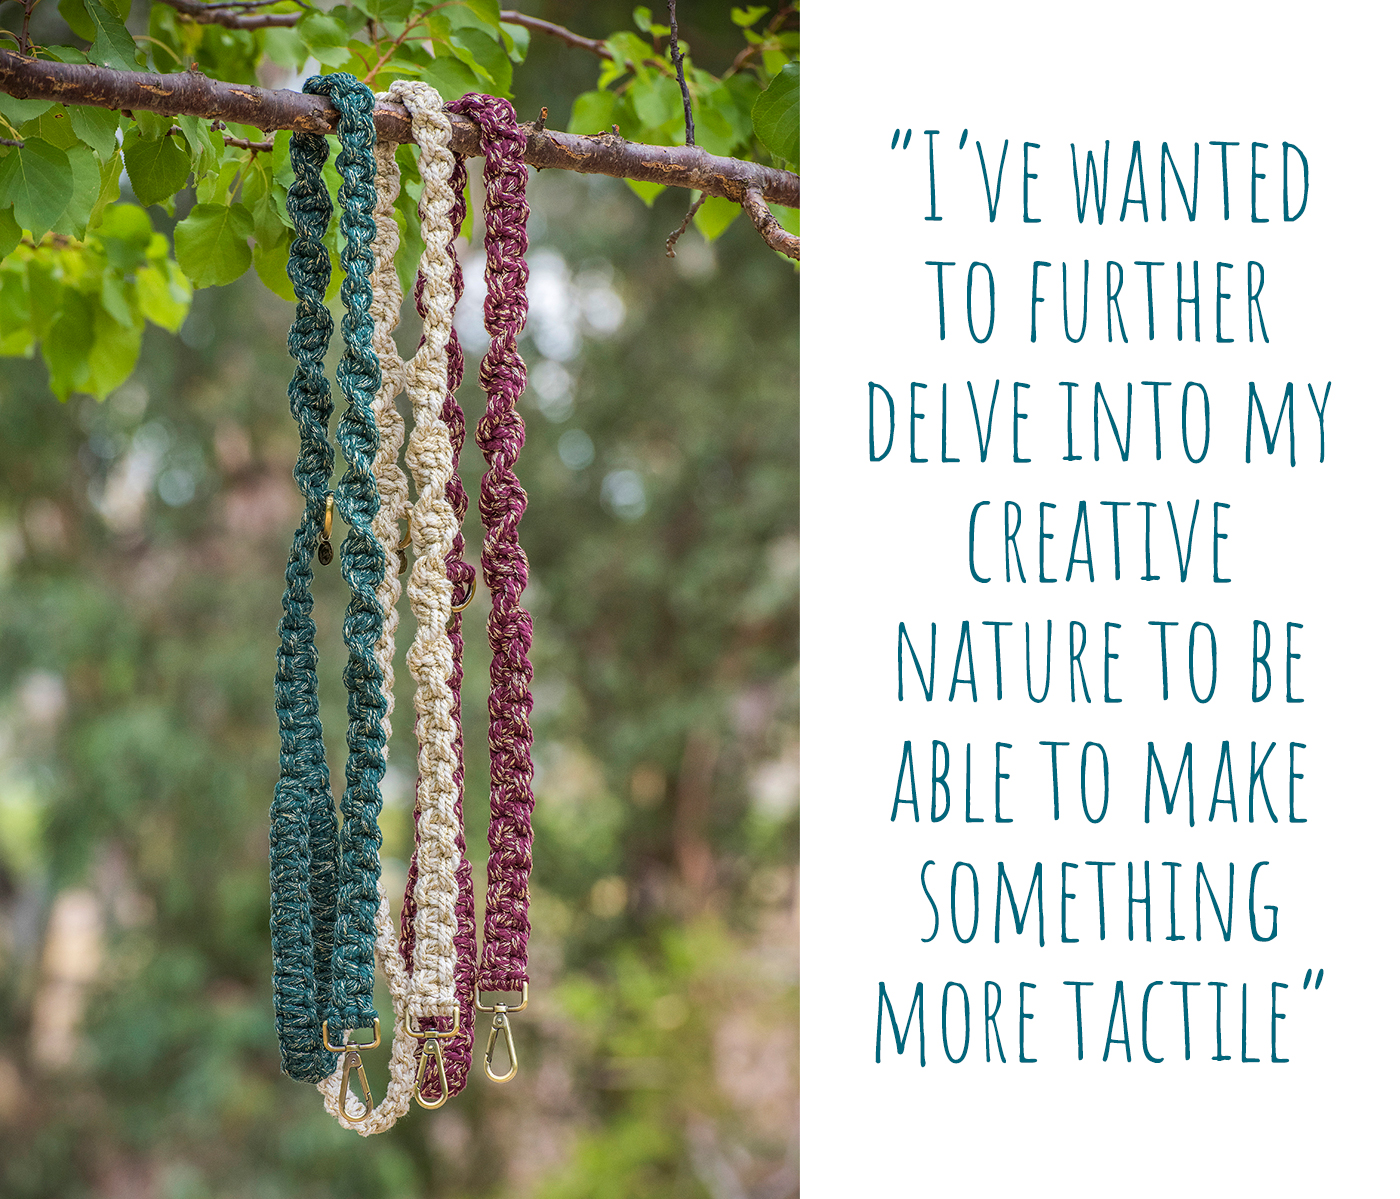 Some of The Boho Pet macramé dog lead range; 'I've wanted to further delve into my creative nature to be able to make something more tactile'